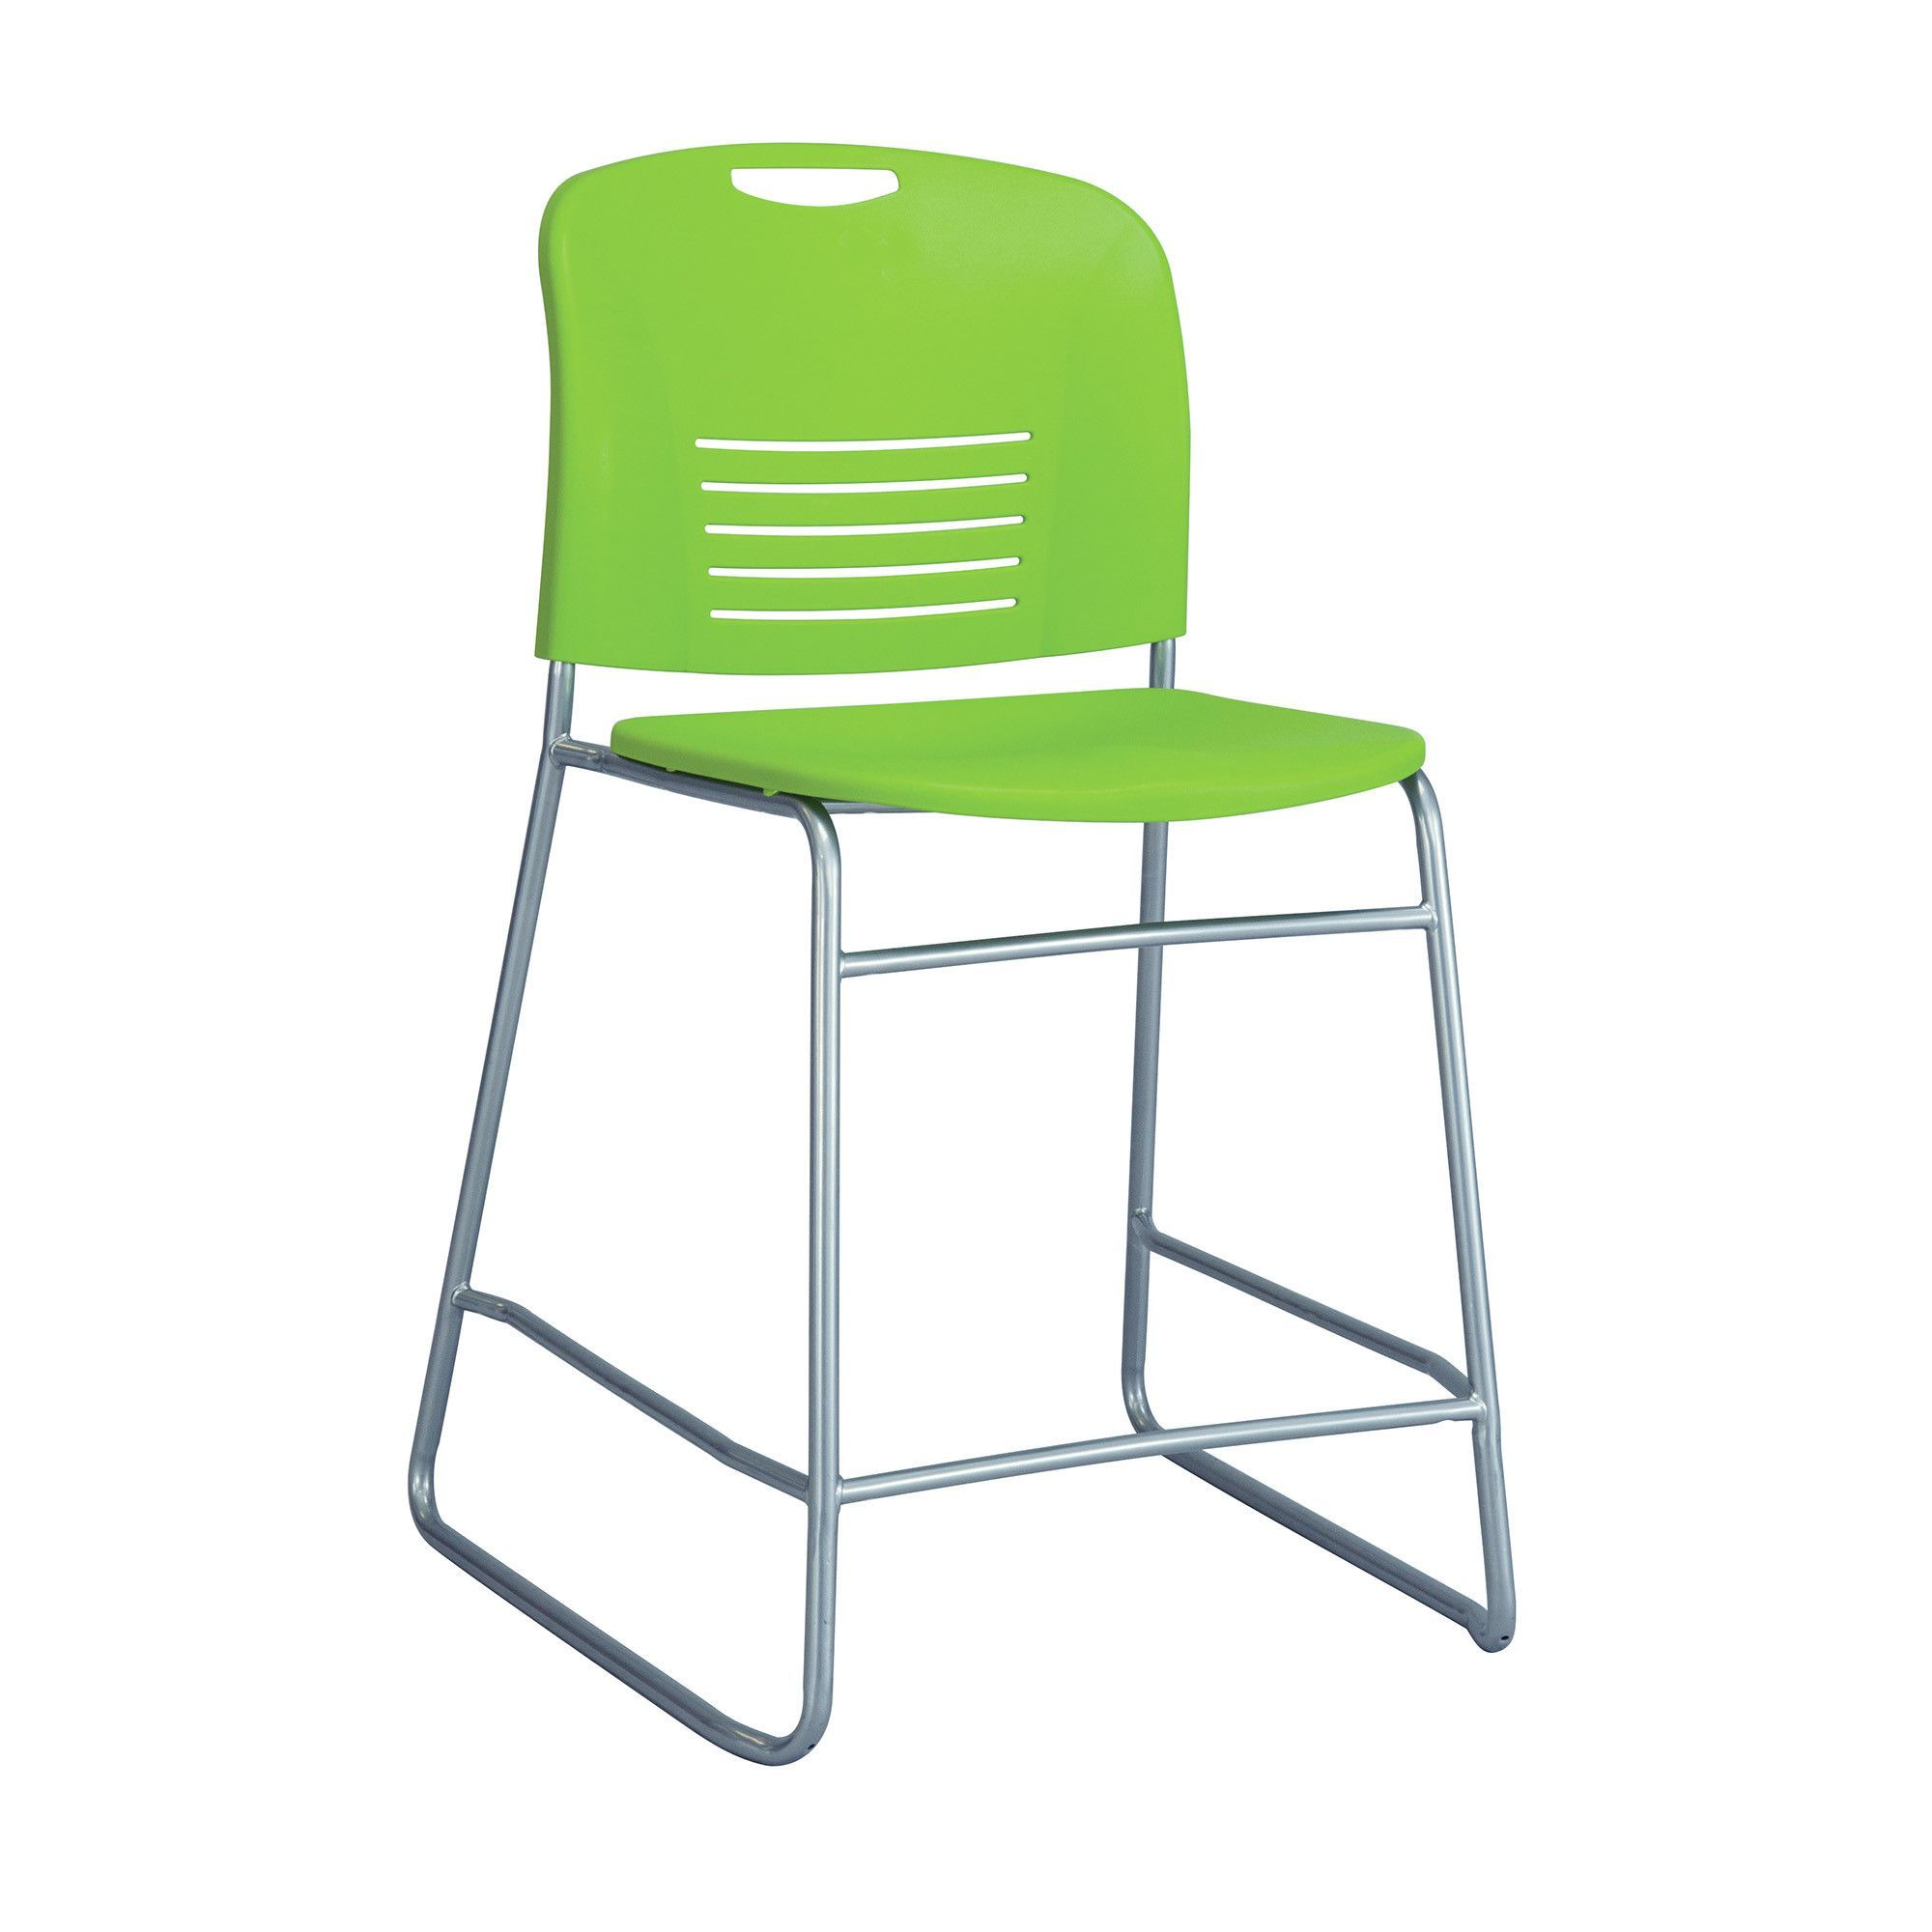 Vy™ Mid-Back Conference Chairs with Seat